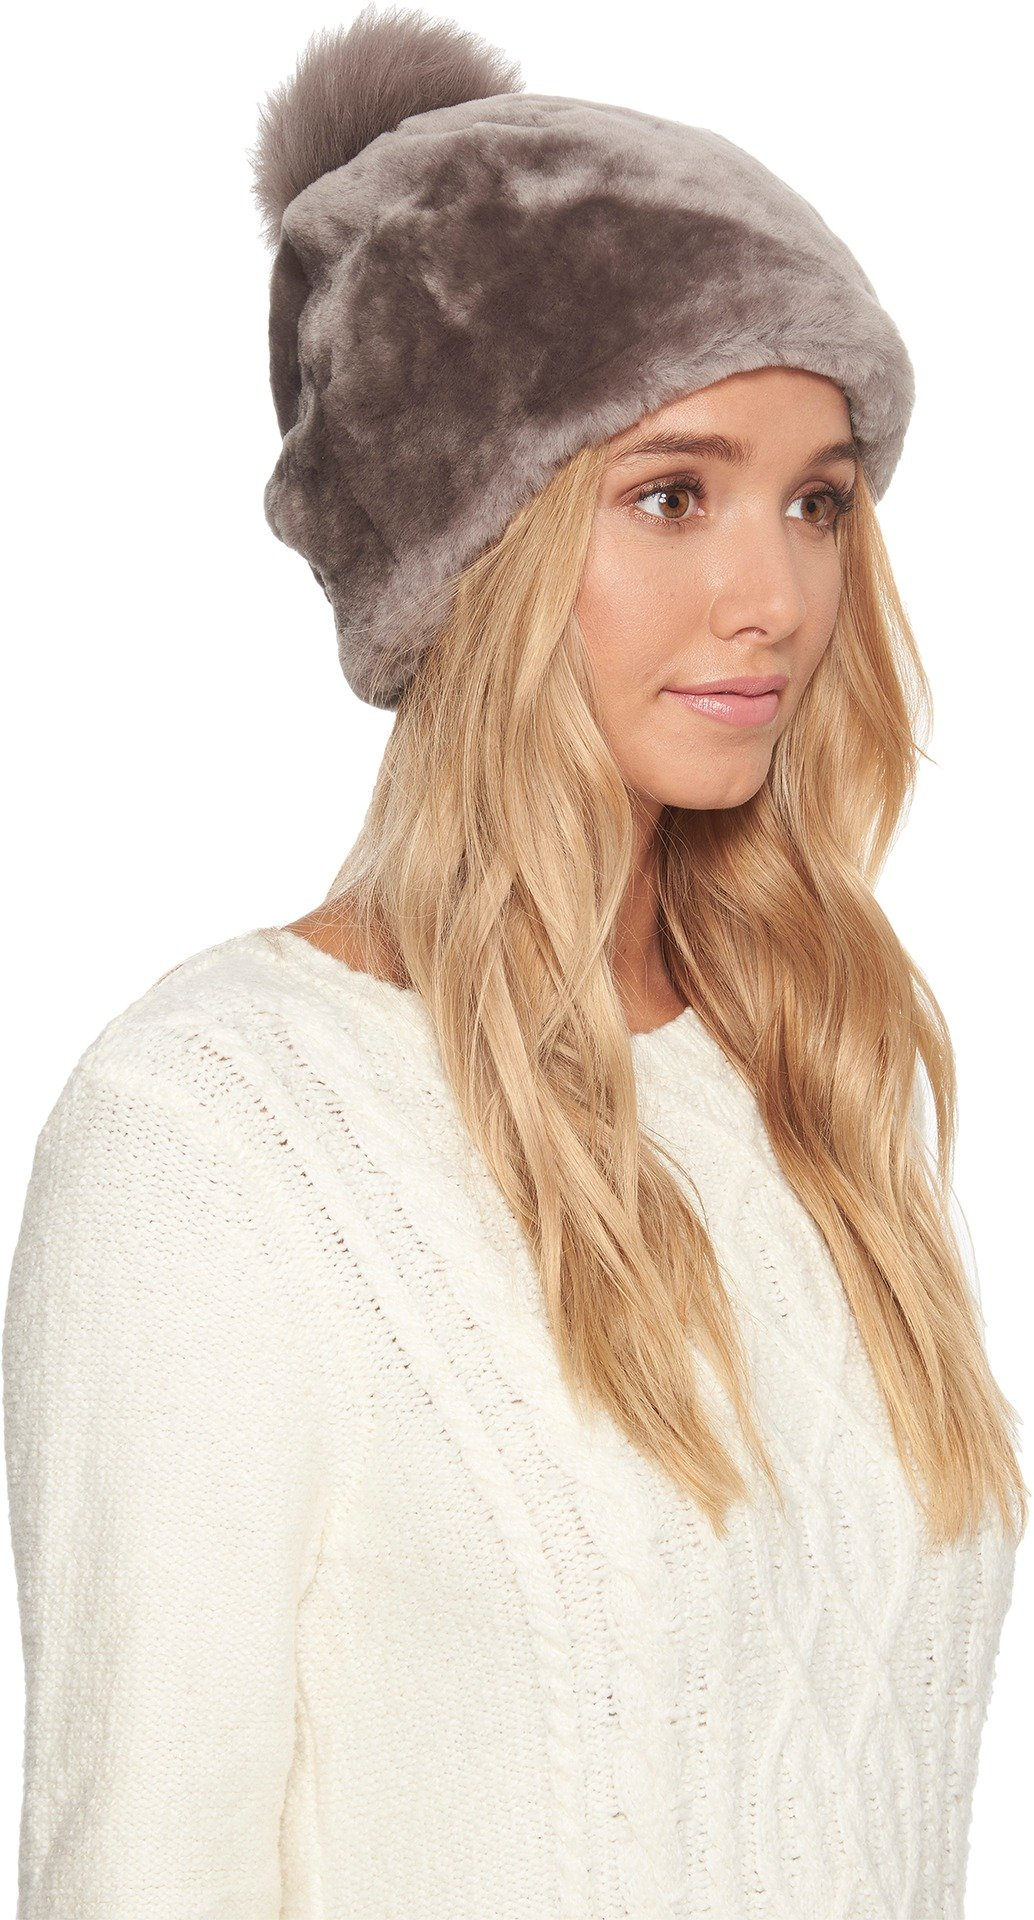 UGG Women's Exposed Sheepskin Beanie Stormy Grey SM/MD by UGG